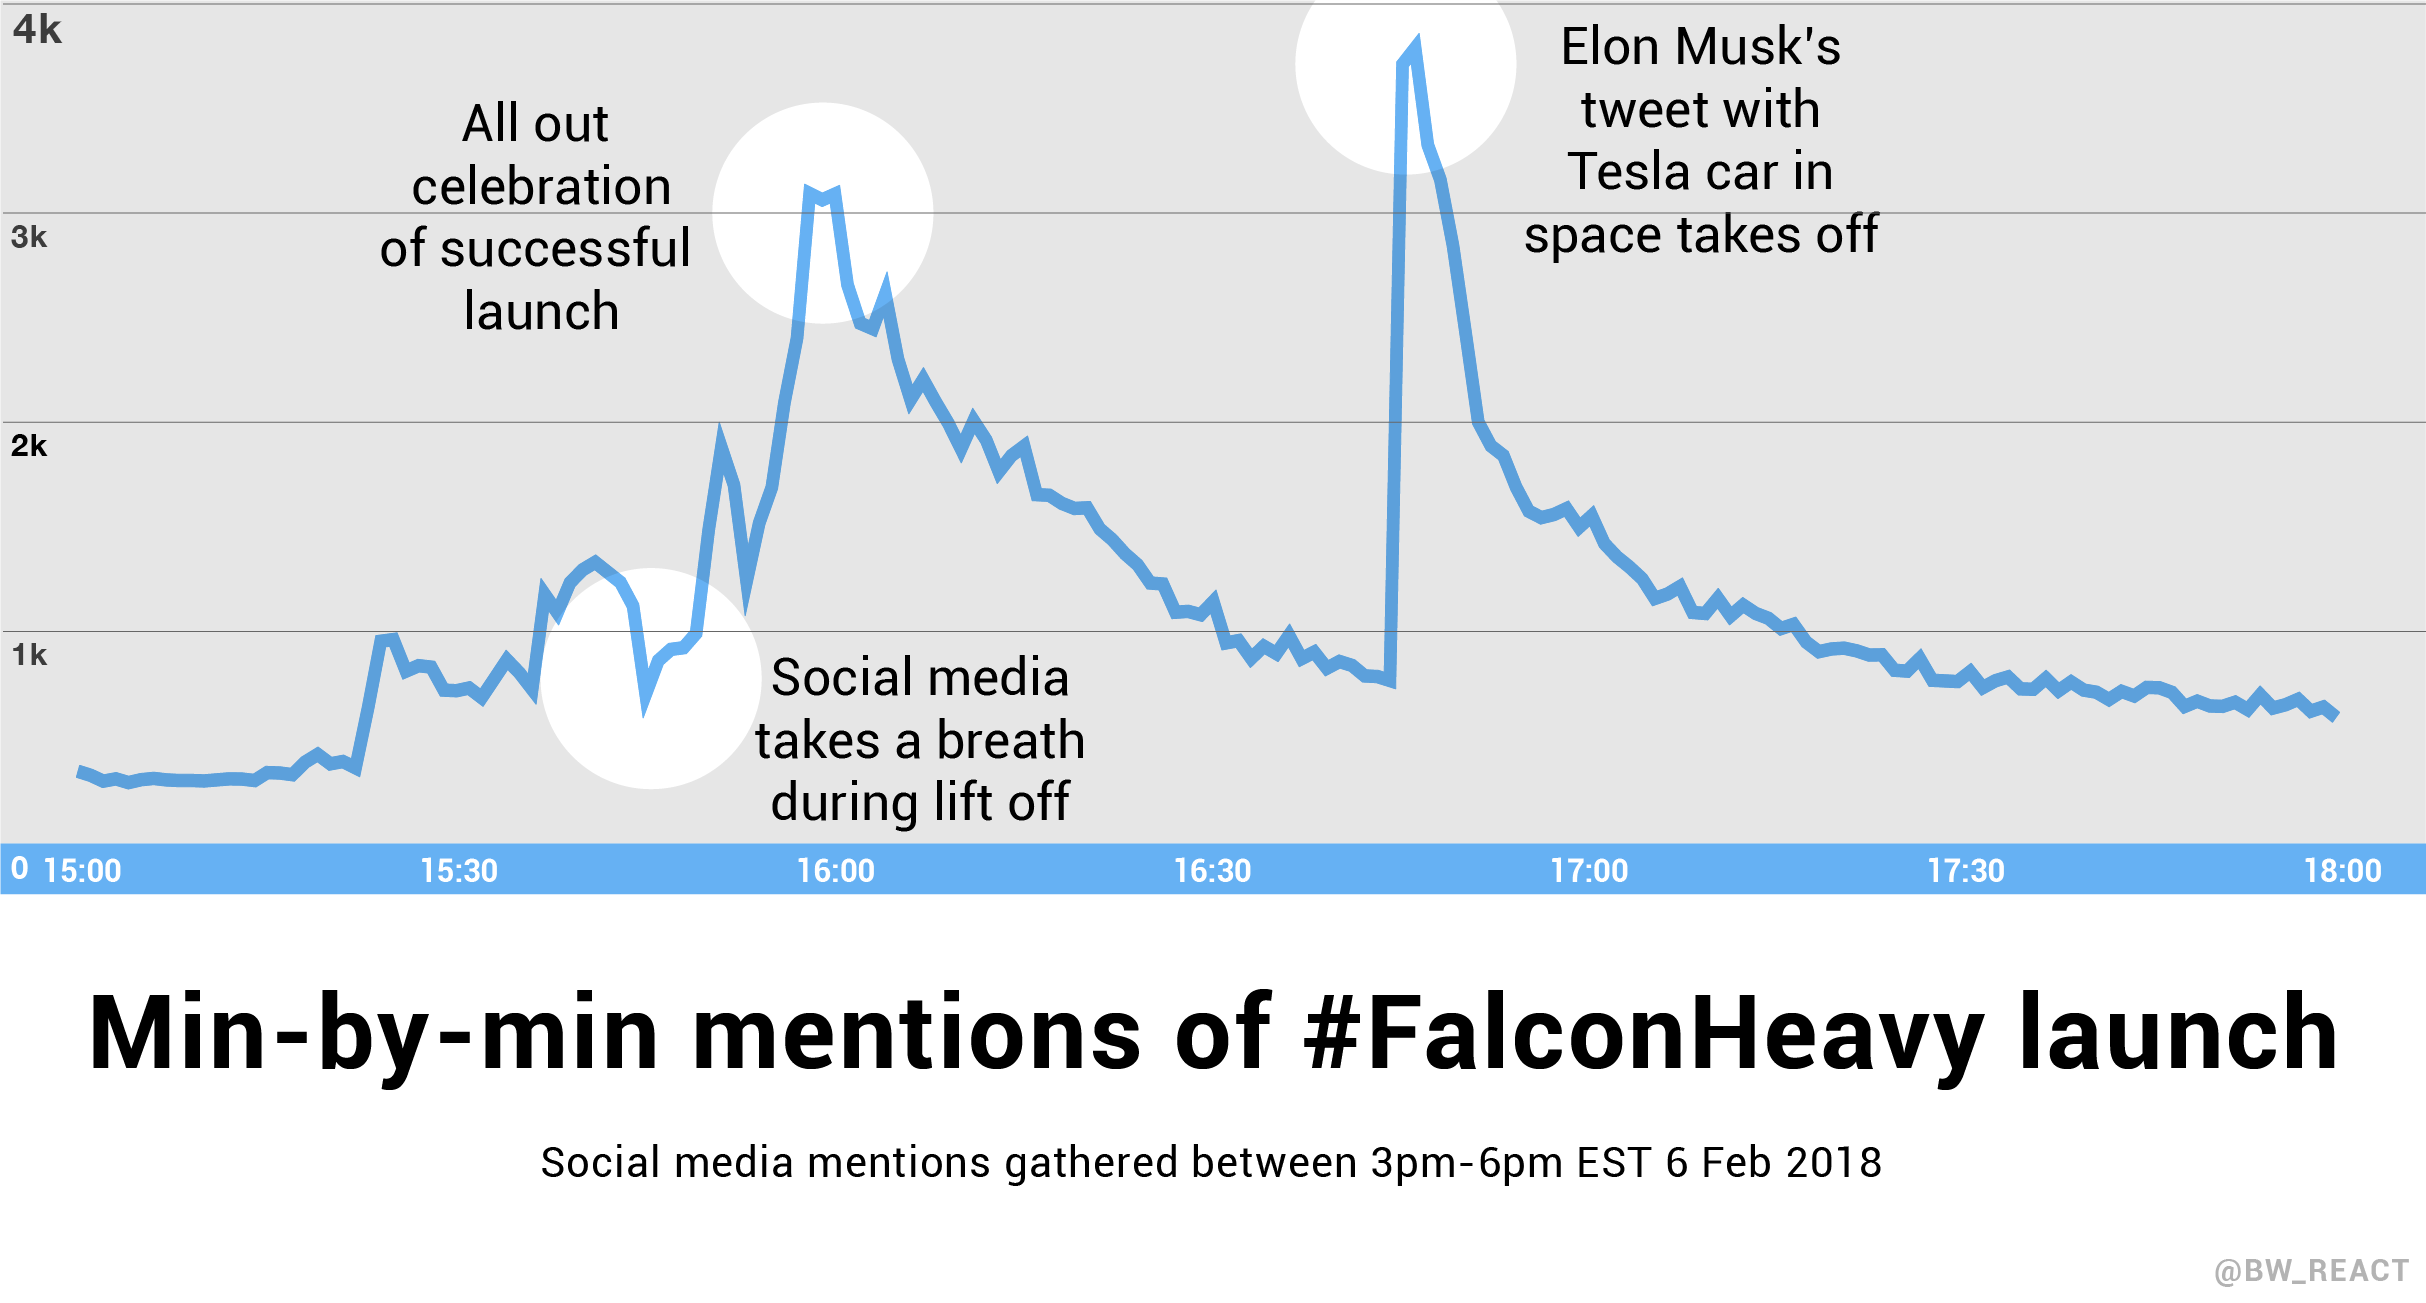 A line chart shows minute my minute mentions of the Falcon Heavy launch